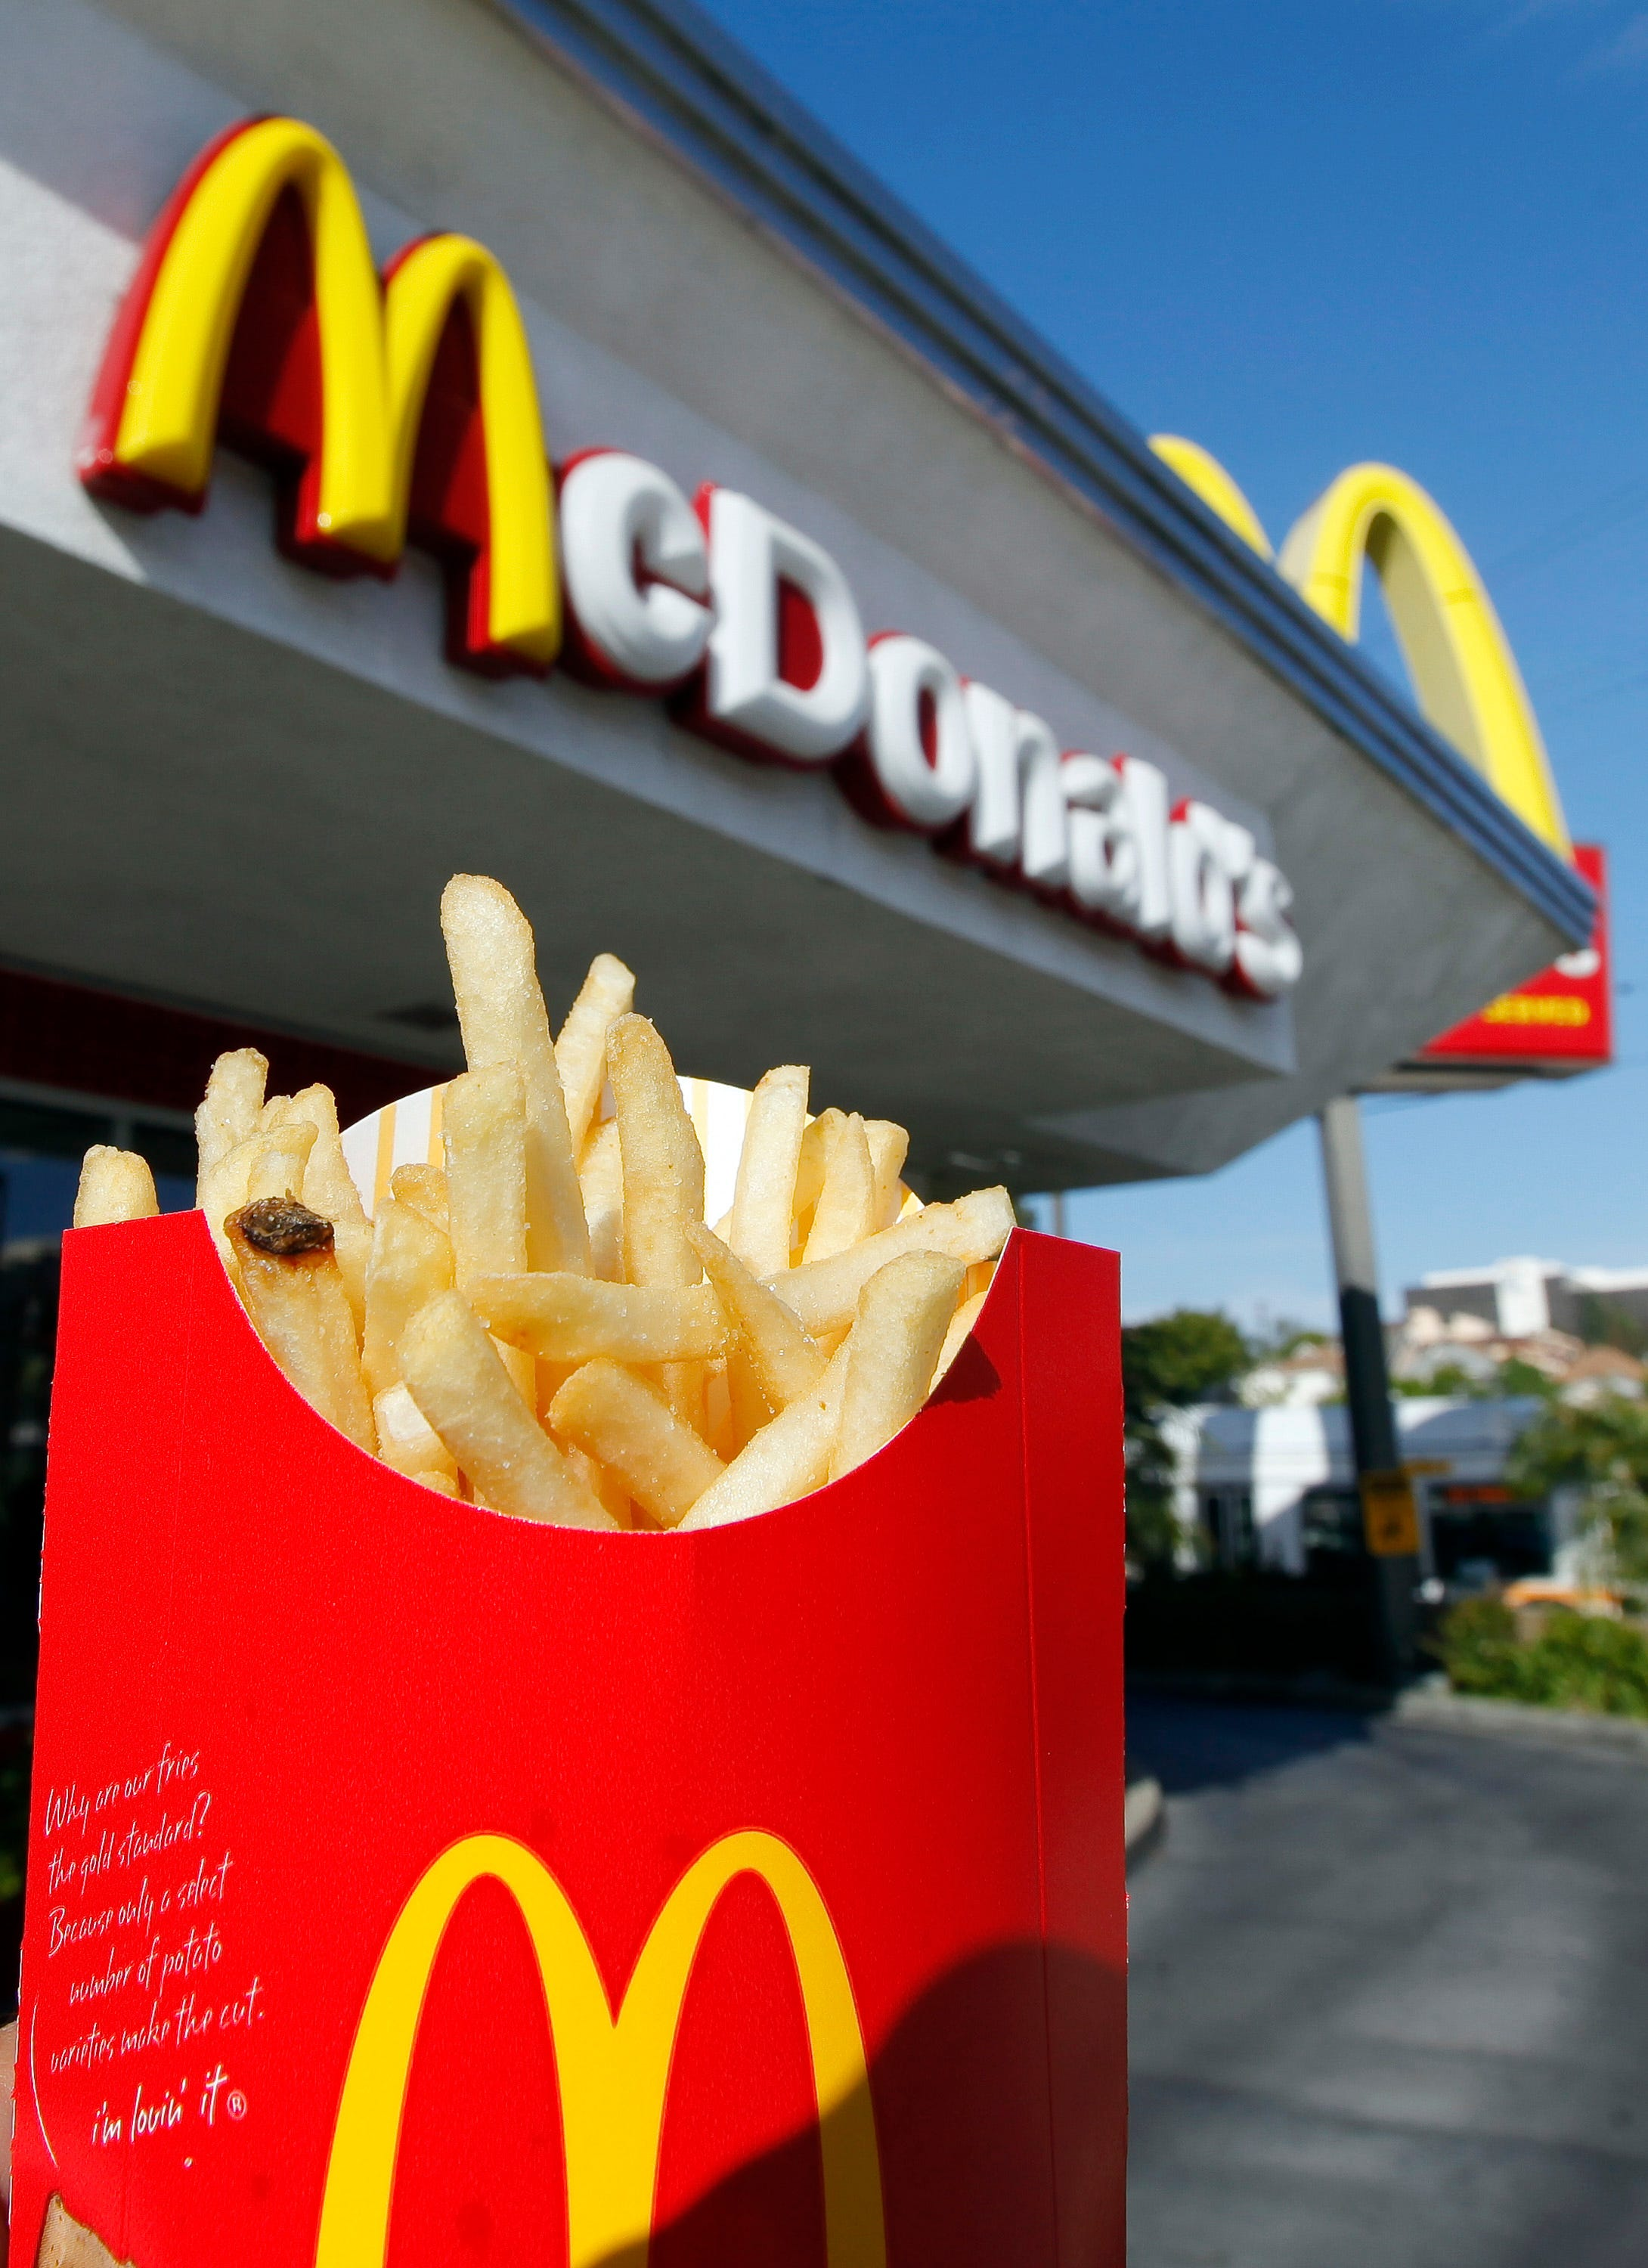 McDonald's CEO Stephen Easterbrook paid $15.9 million in 2018